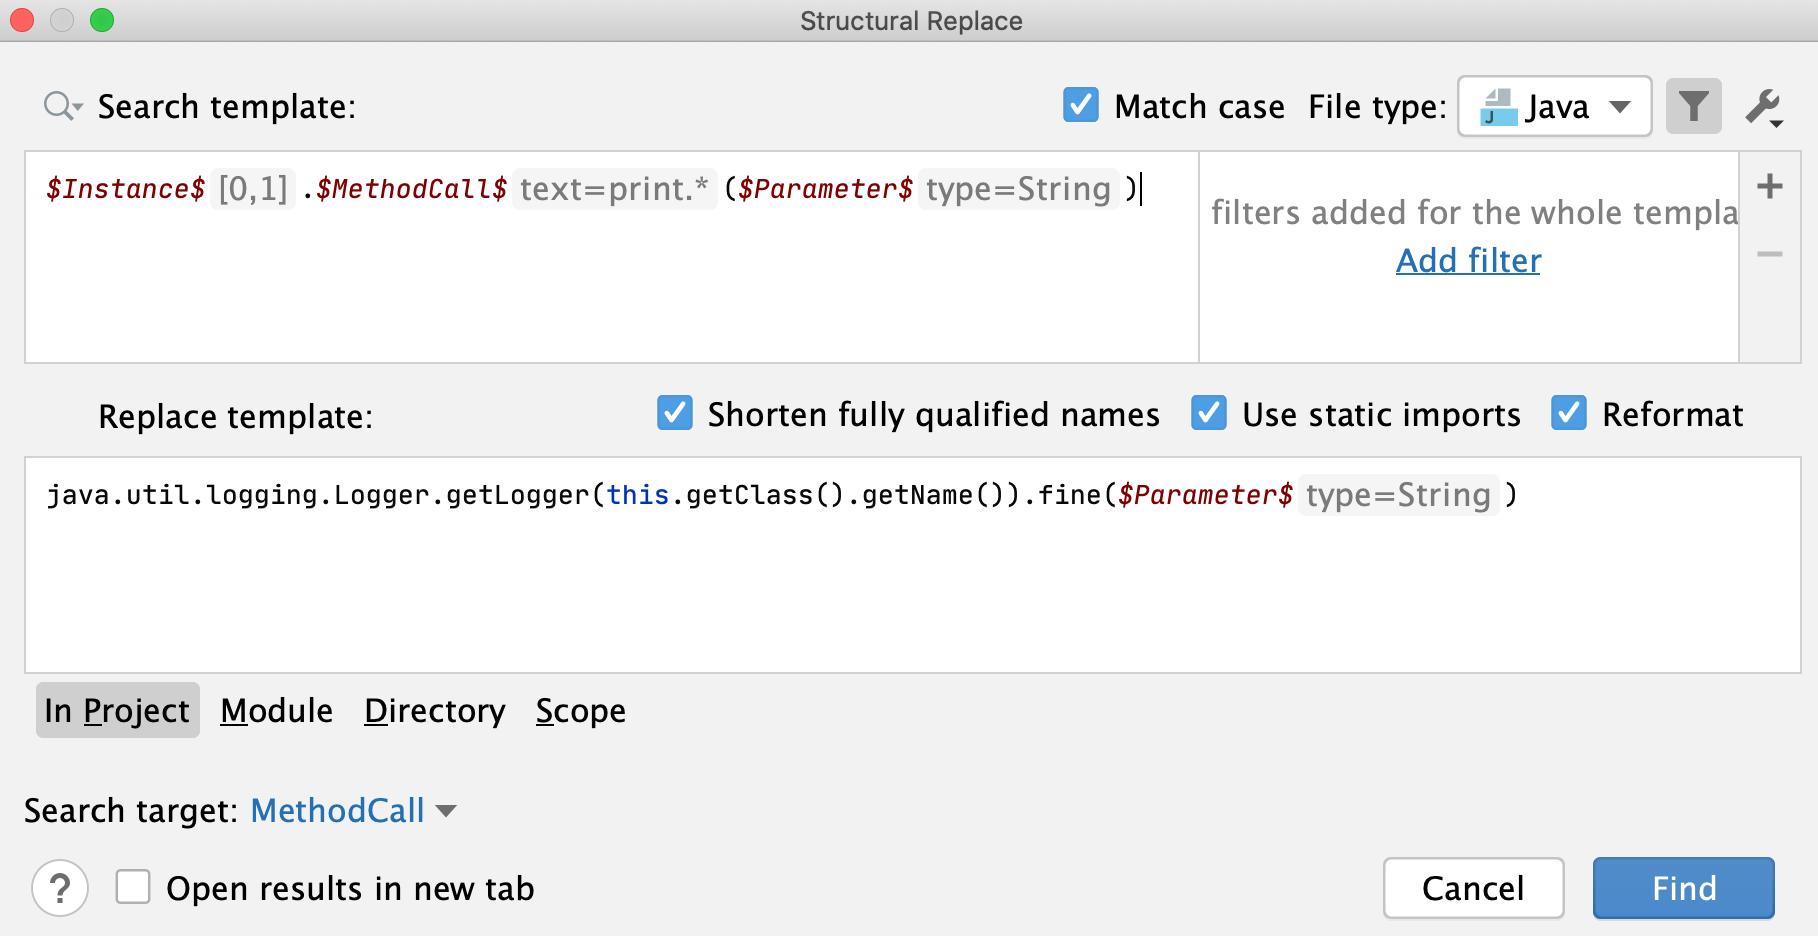 The Structural Replace dialog: replace pattern